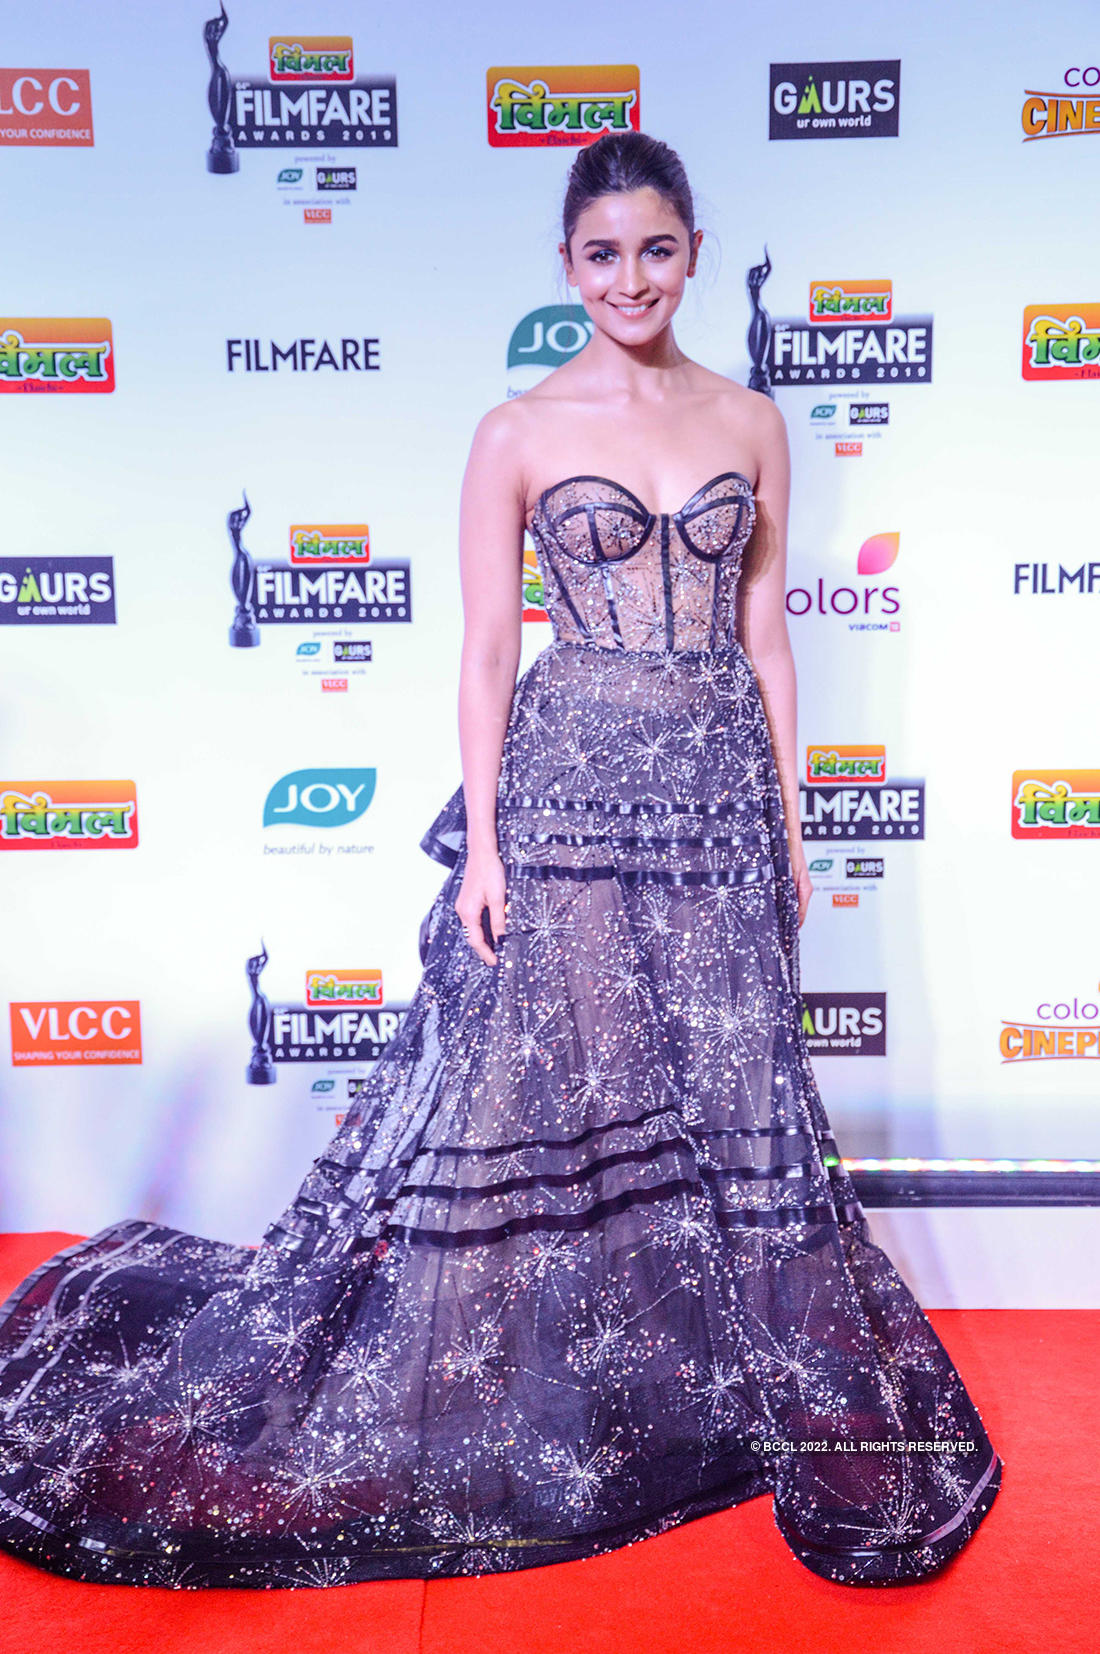 64th Vimal Elaichi Filmfare Awards 2019: Divas dressed to impress the fashion police